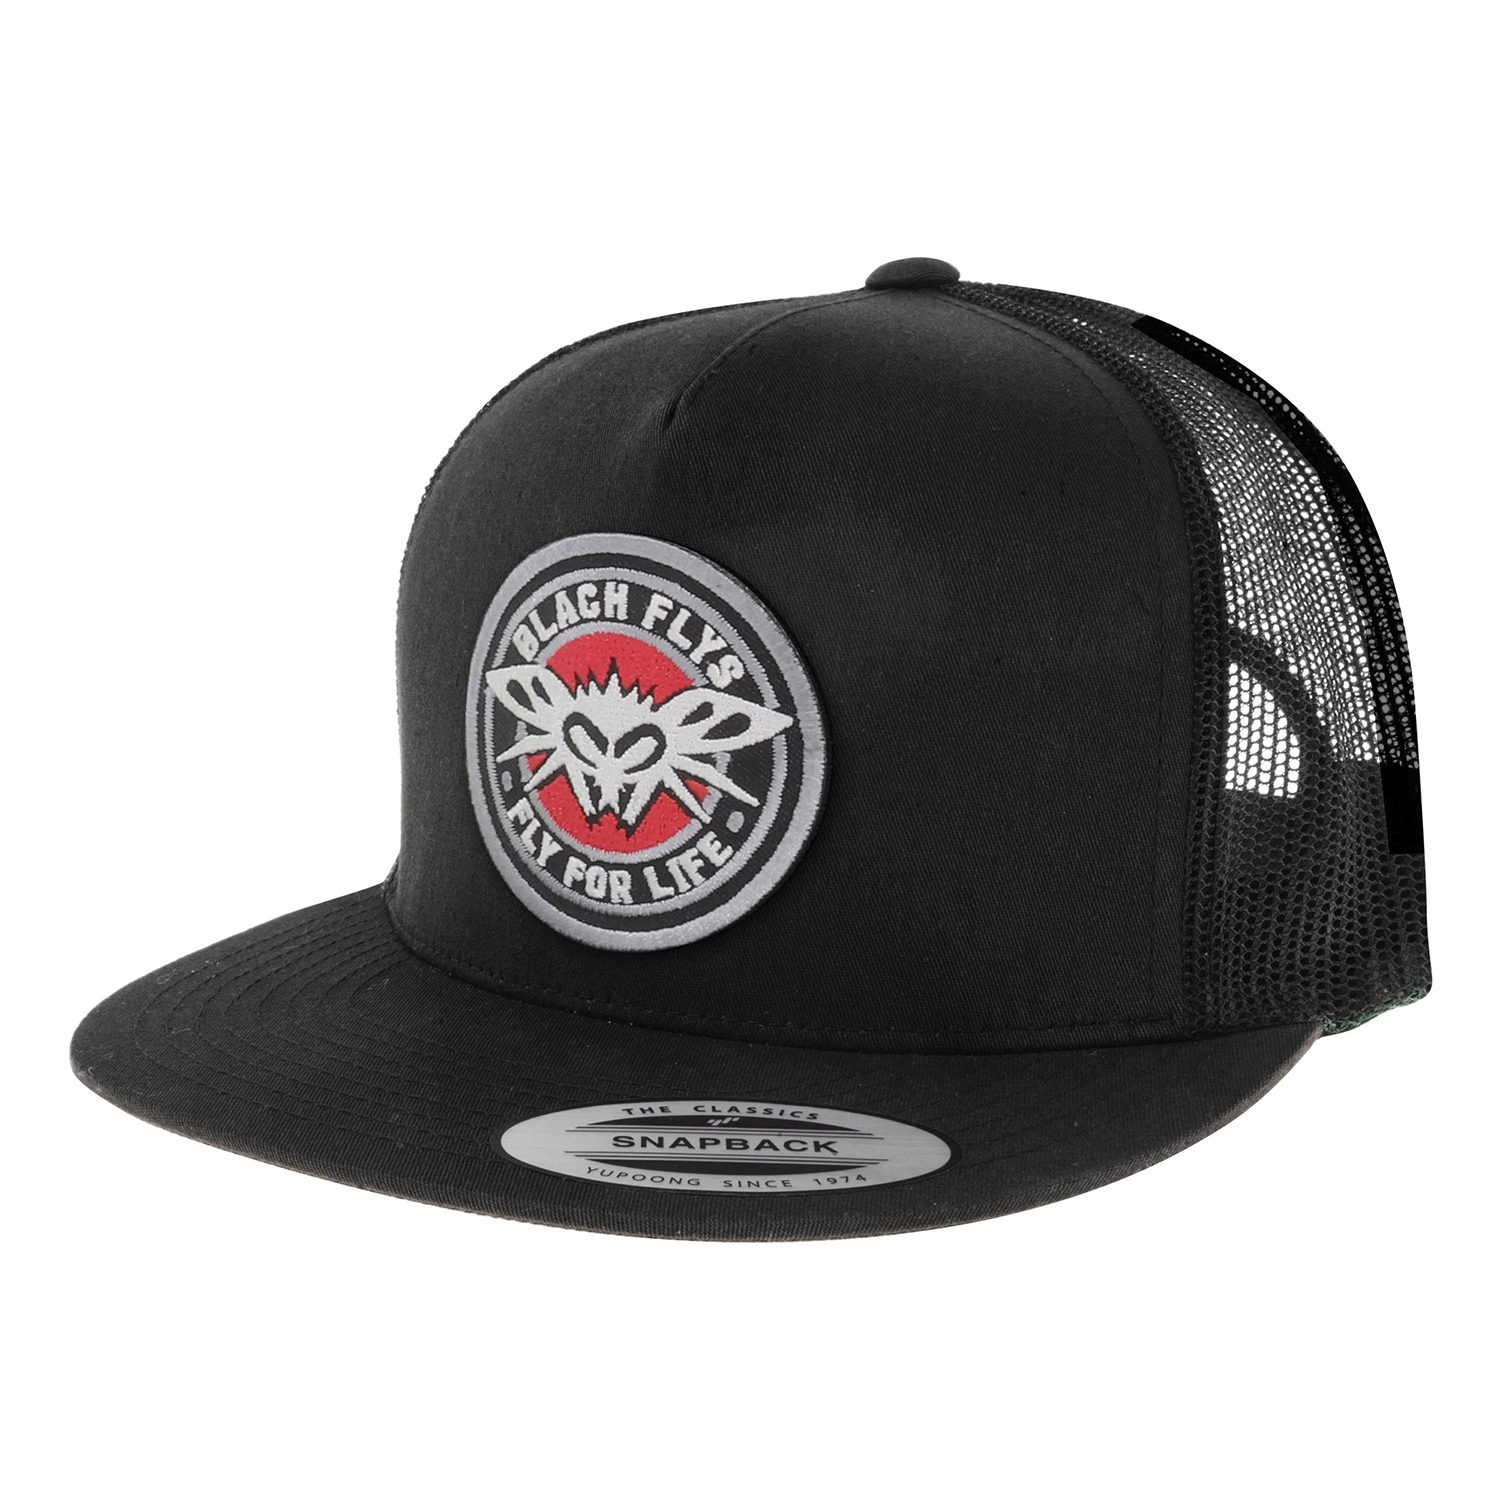 FLY 4 LIFE PATCH TRUCKER CAP